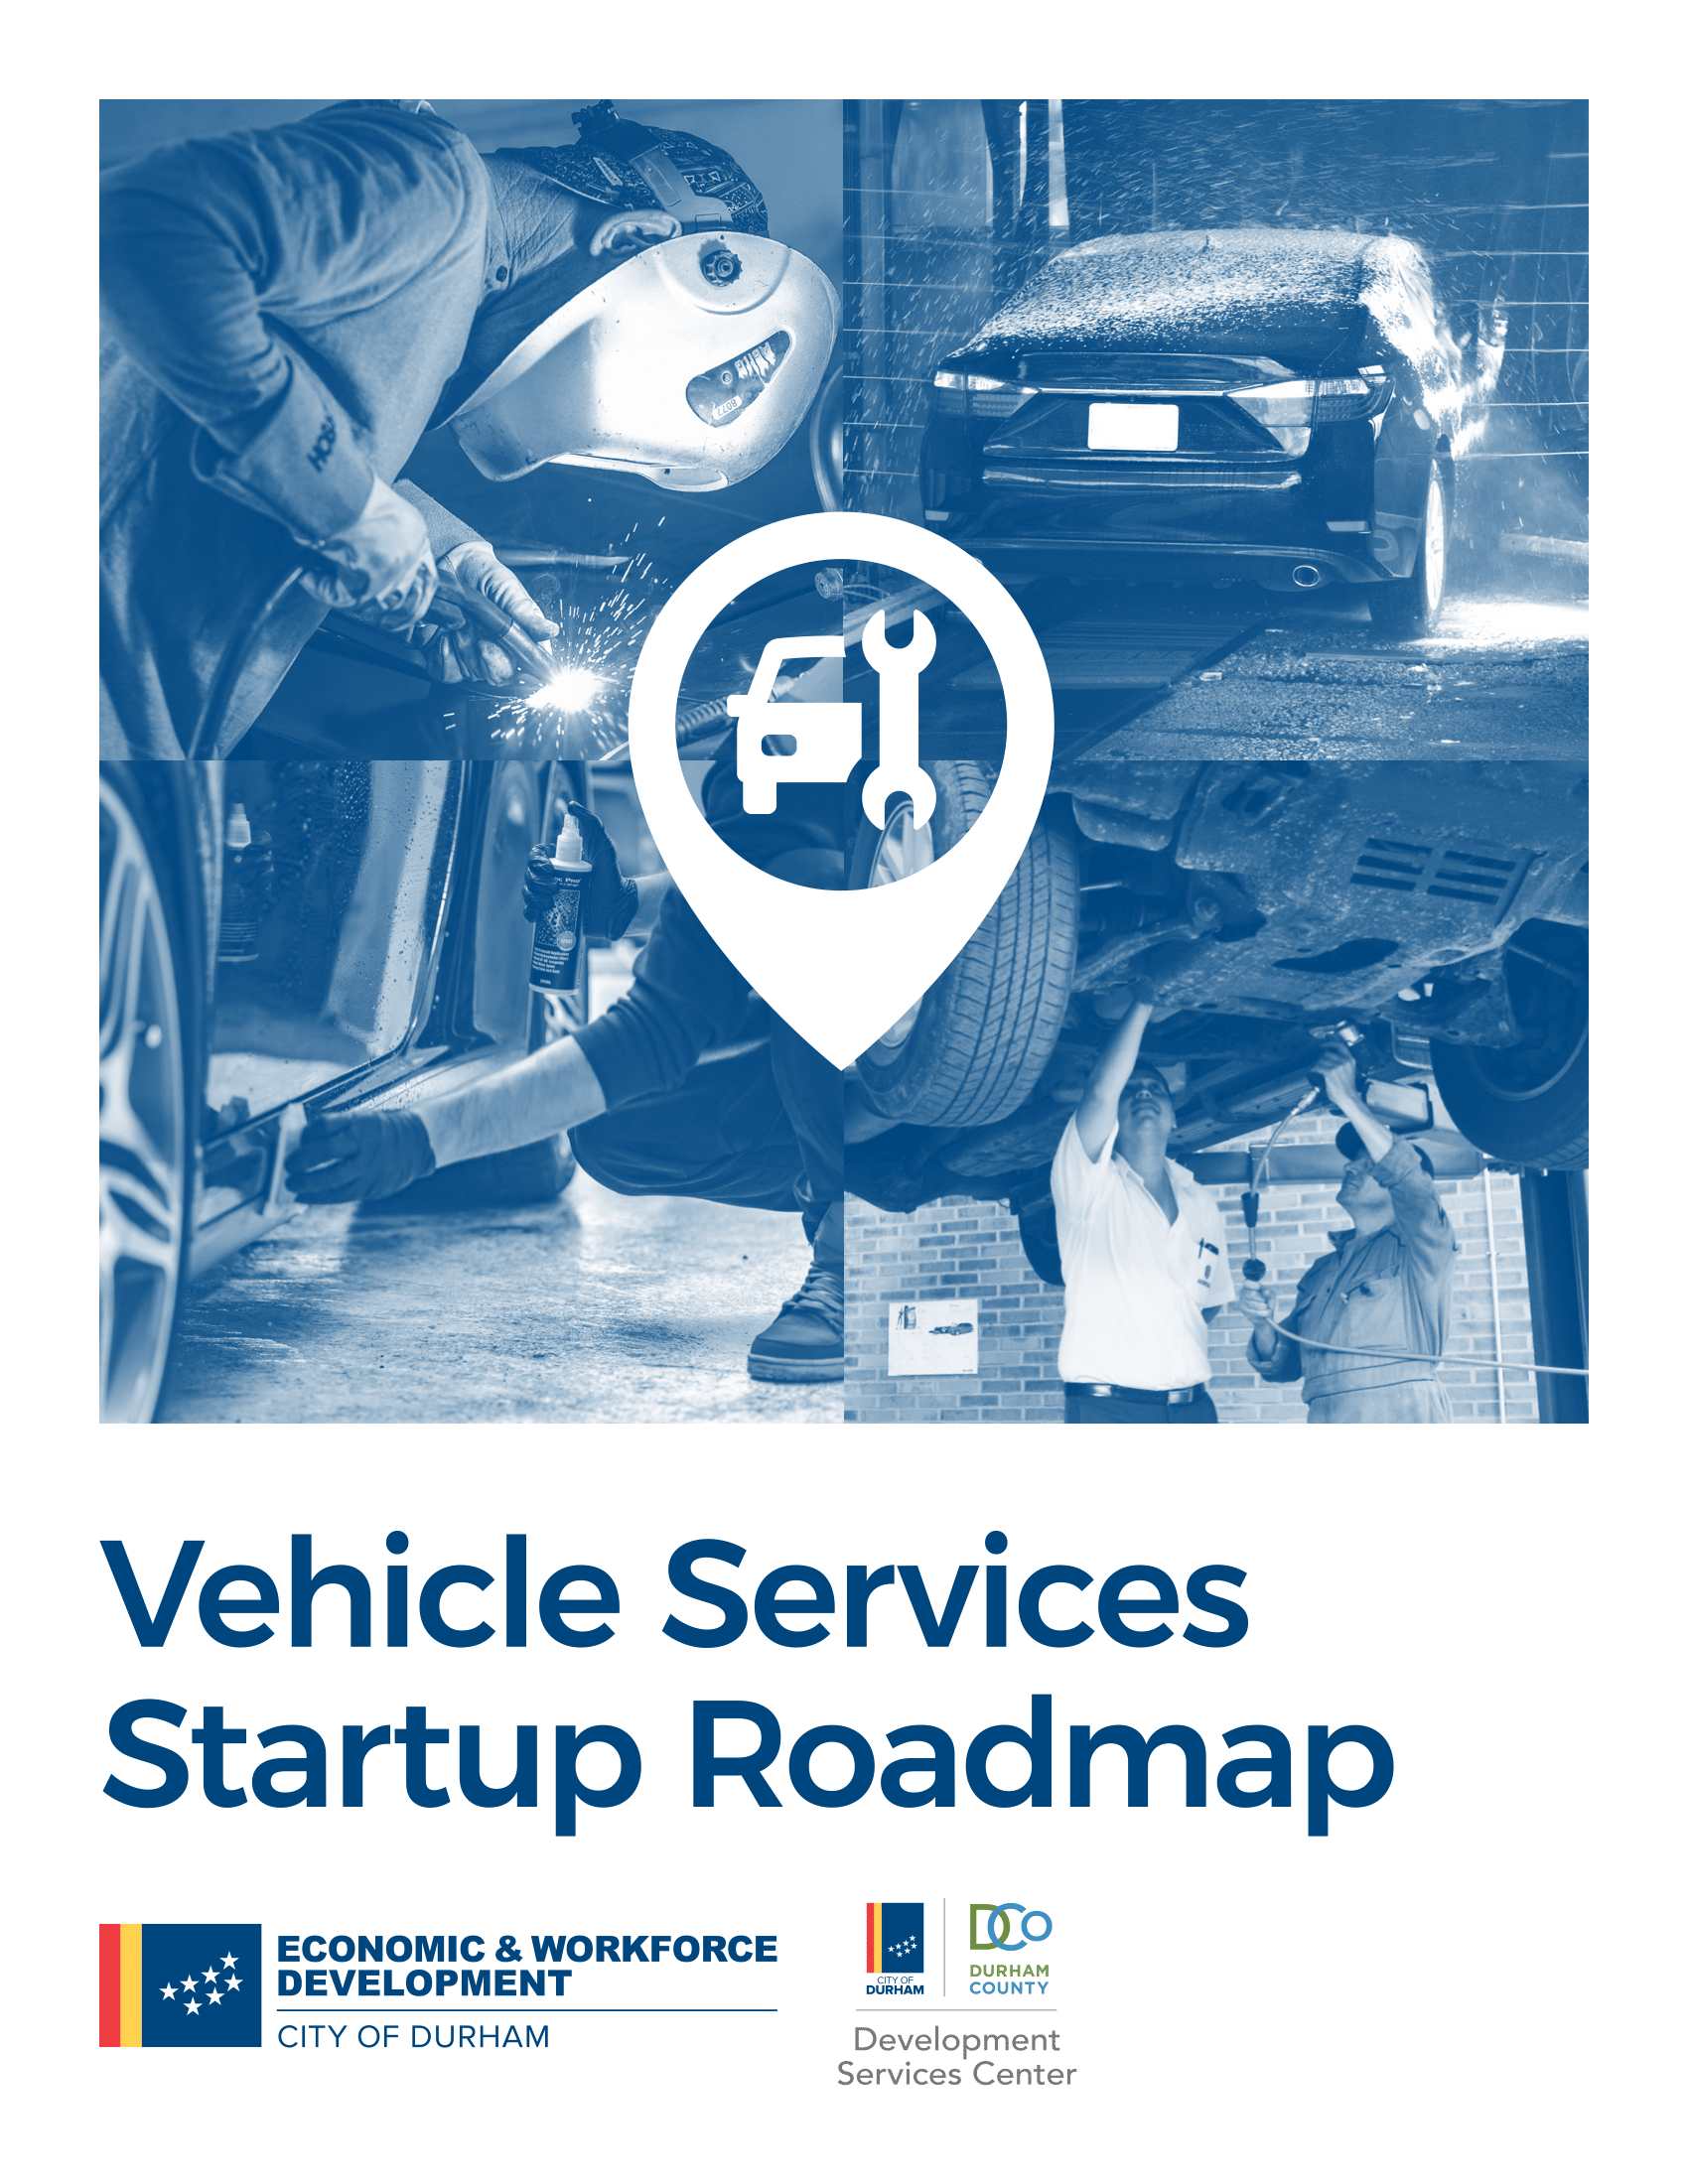 Vehicle Services Startup Roadmap